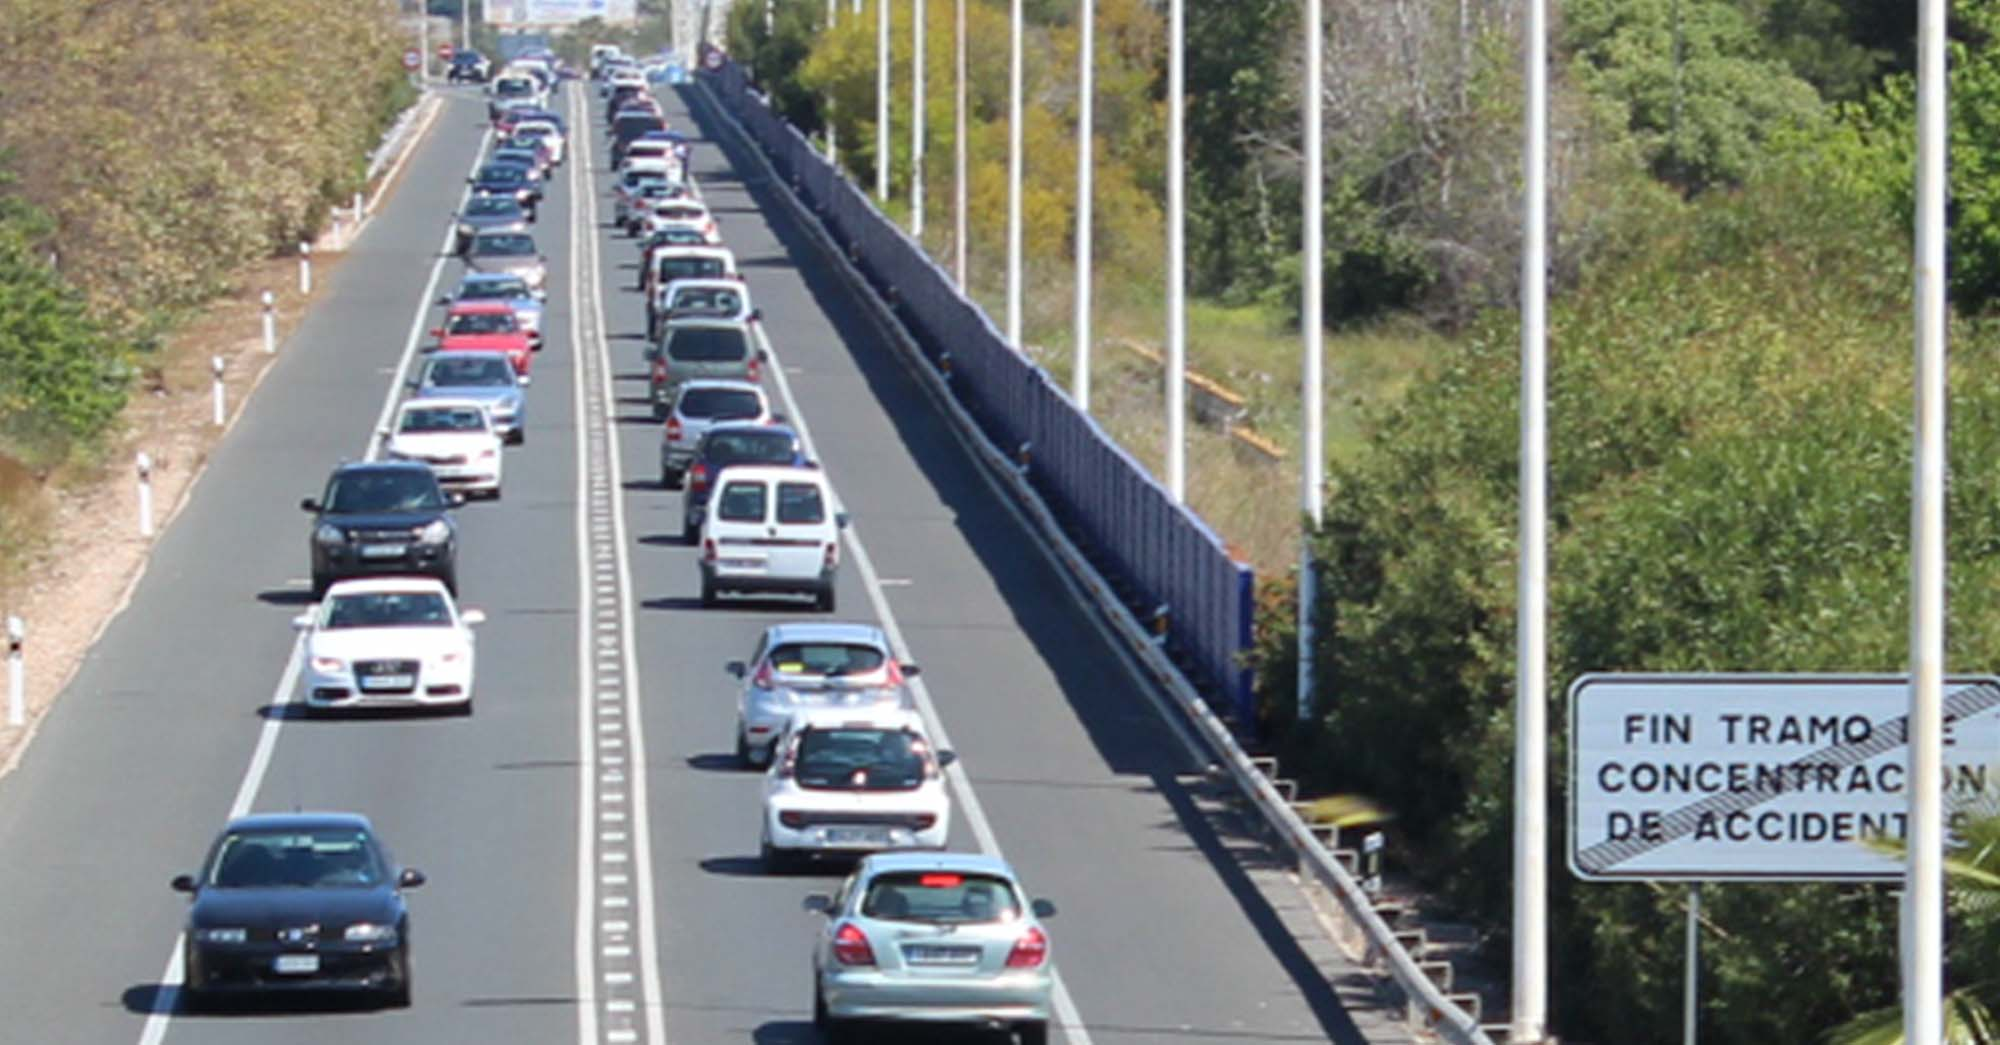 Speed Cameras For N 332 Accident Black Spots The Leader Newspaper # Muebles Dolores